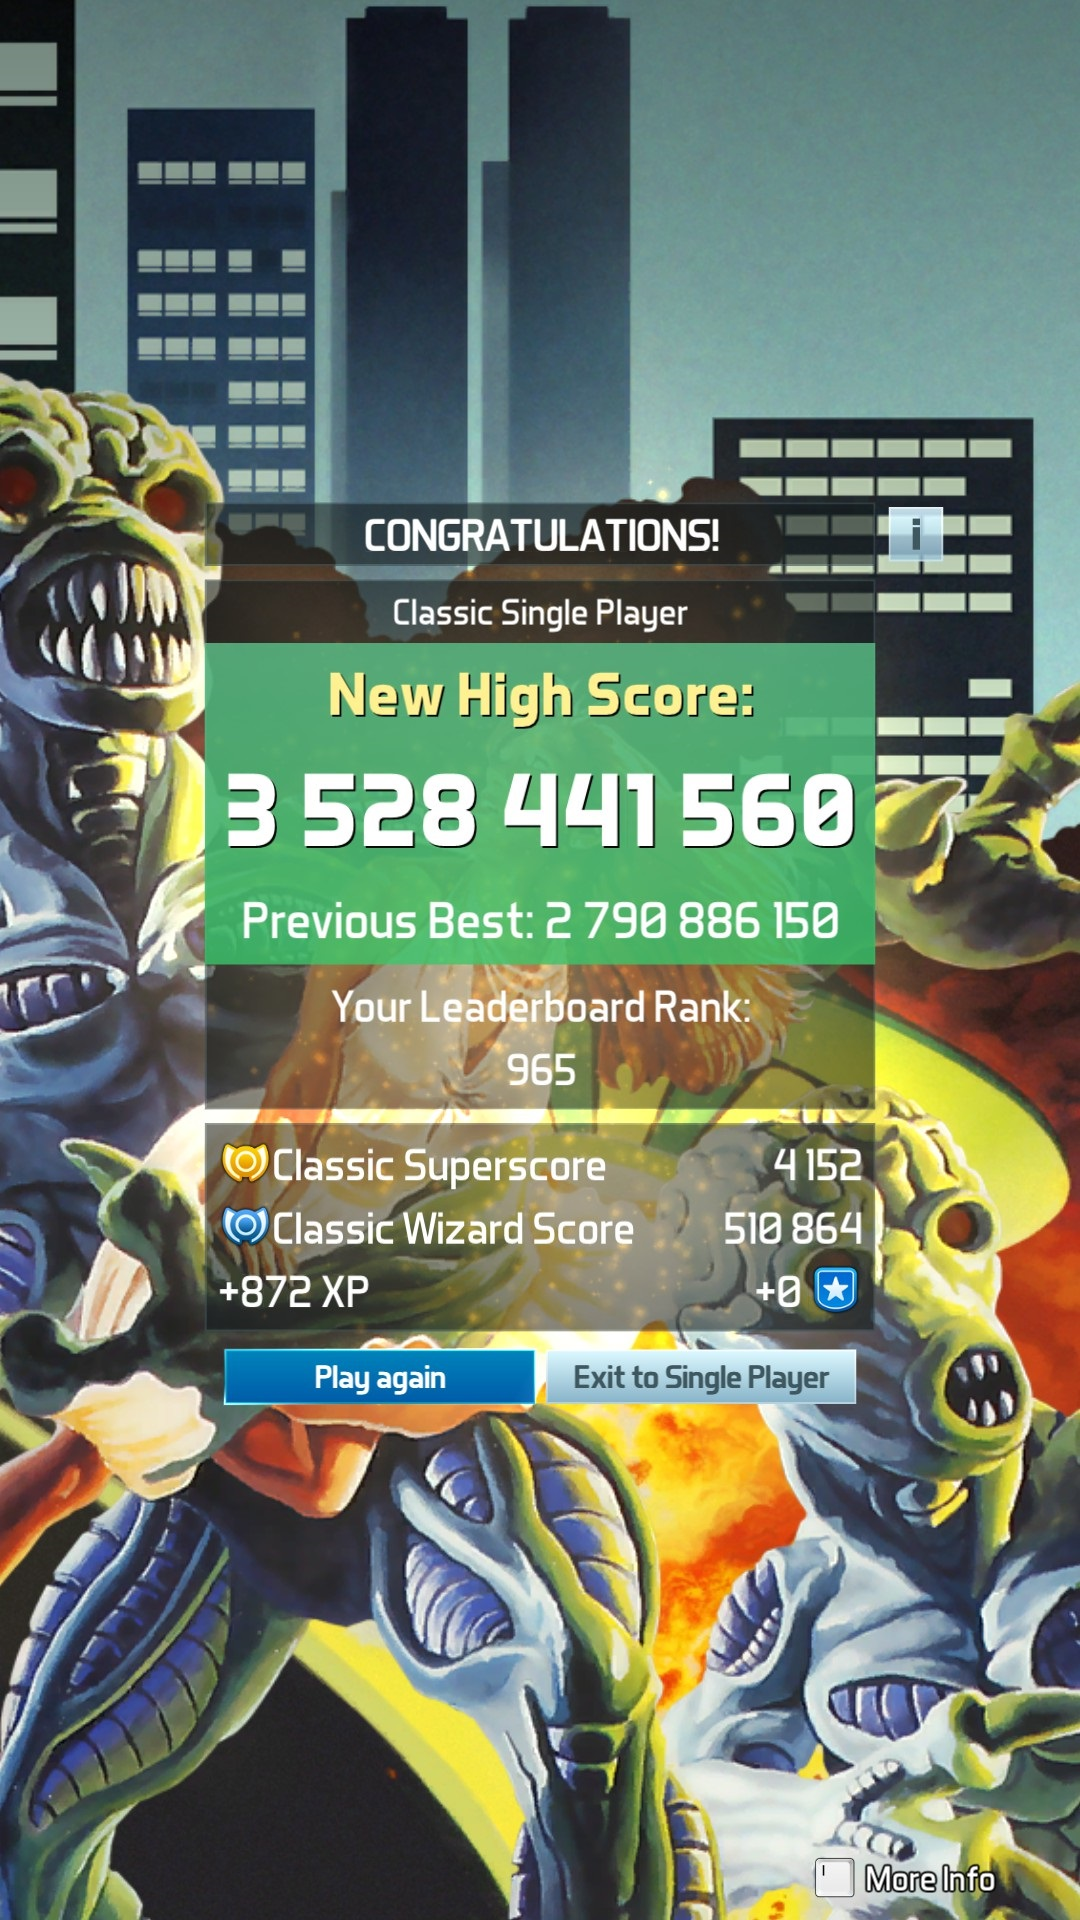 GTibel: Pinball FX3: Attack From Mars [Classic] (PC) 3,528,441,560 points on 2020-01-15 09:12:15